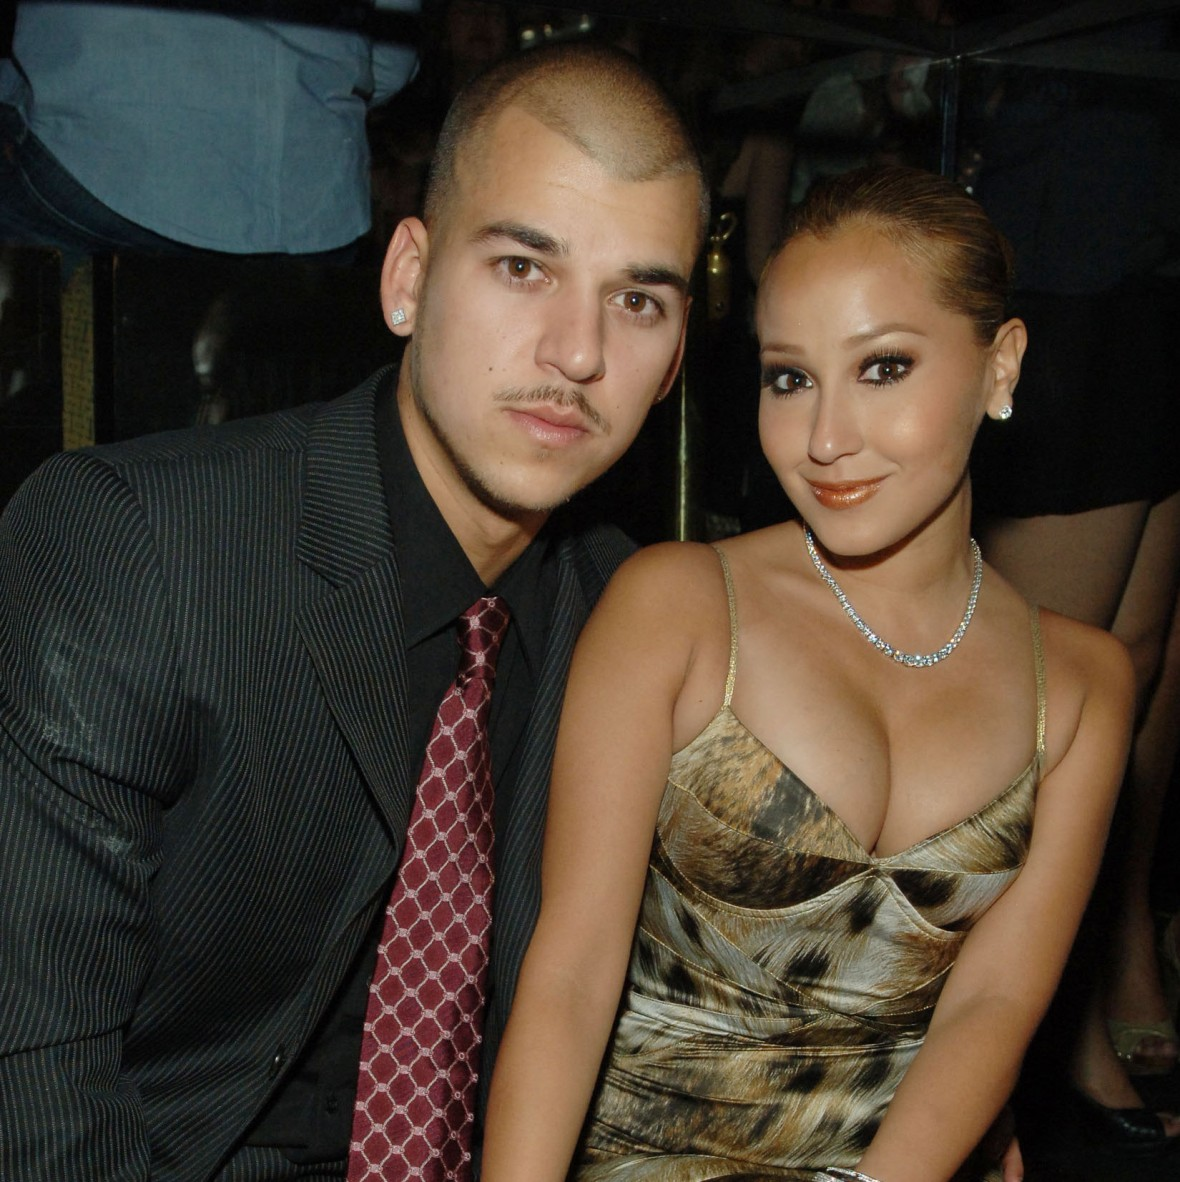 Why Did Rob Kardashian and Adrienne Bailon Break Up? We've Got the